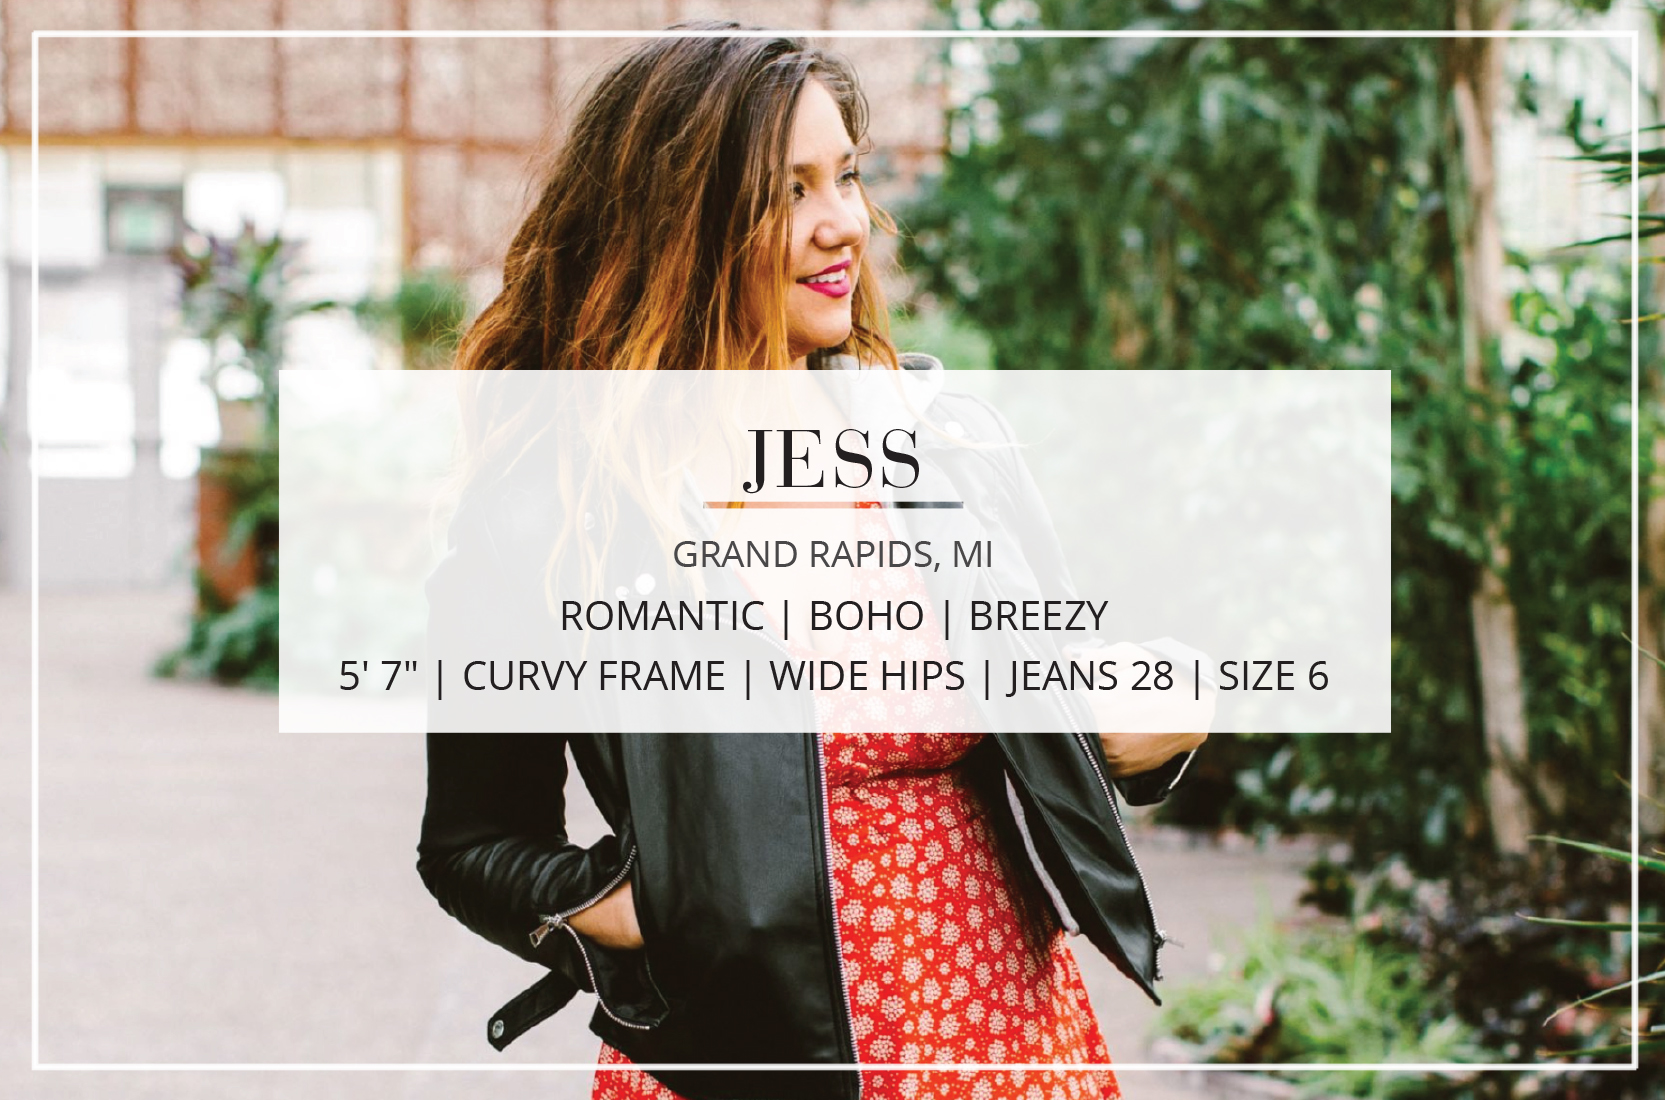 A contributor at The Mom Edit, our resident artist/fashionista Jess' style is boho, vintage, chic.